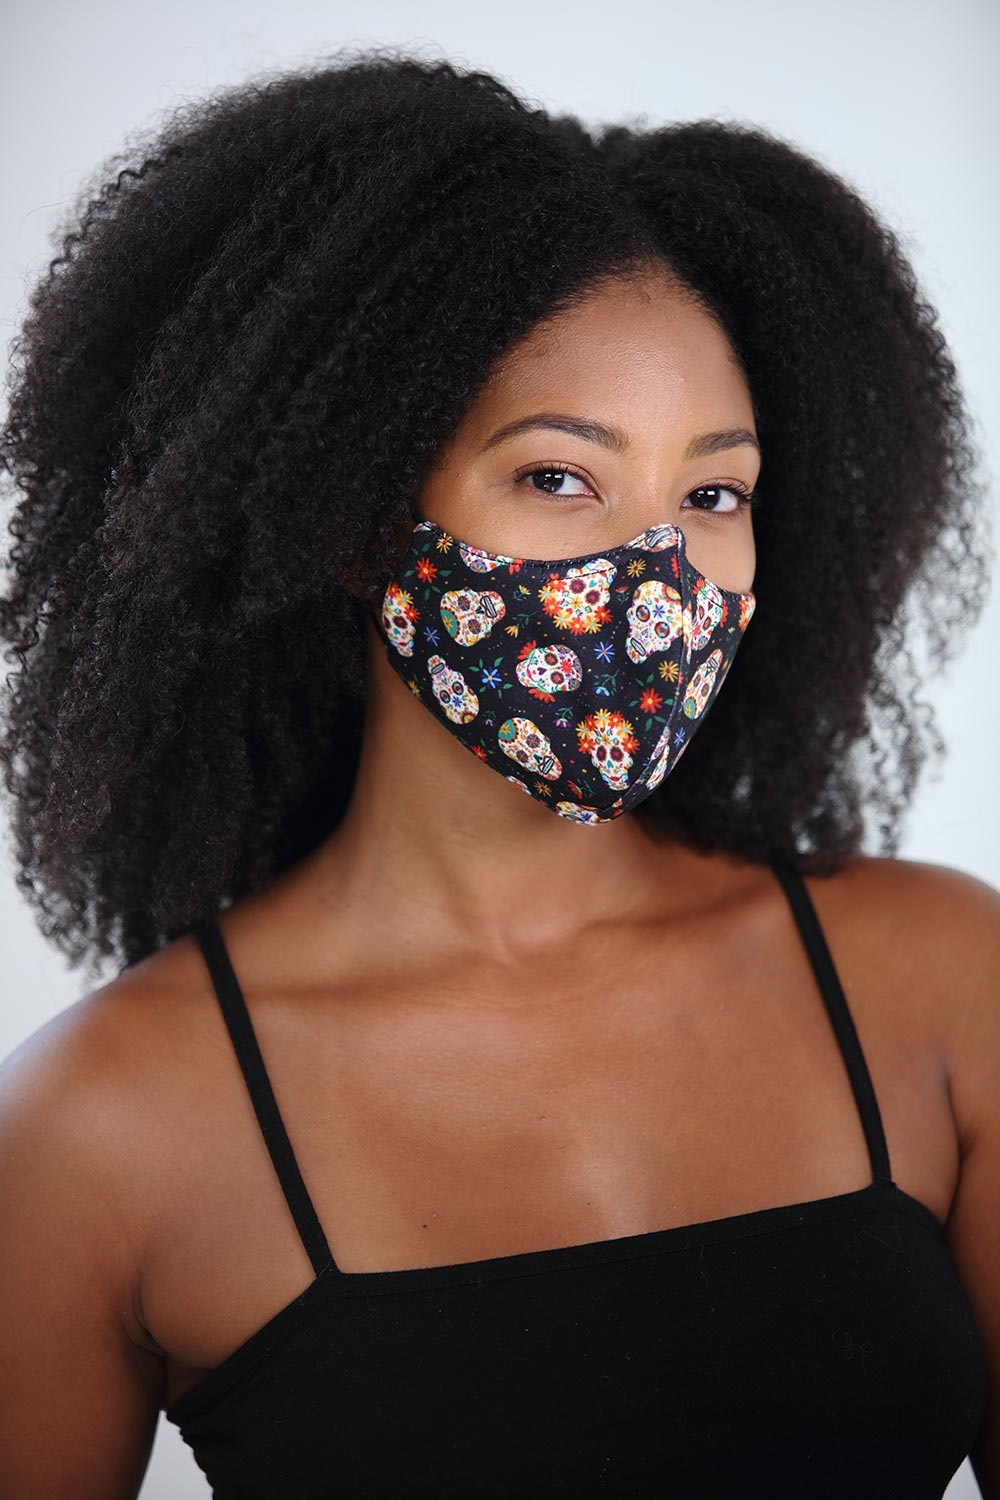 Calaveras Printed Women's Face Mask